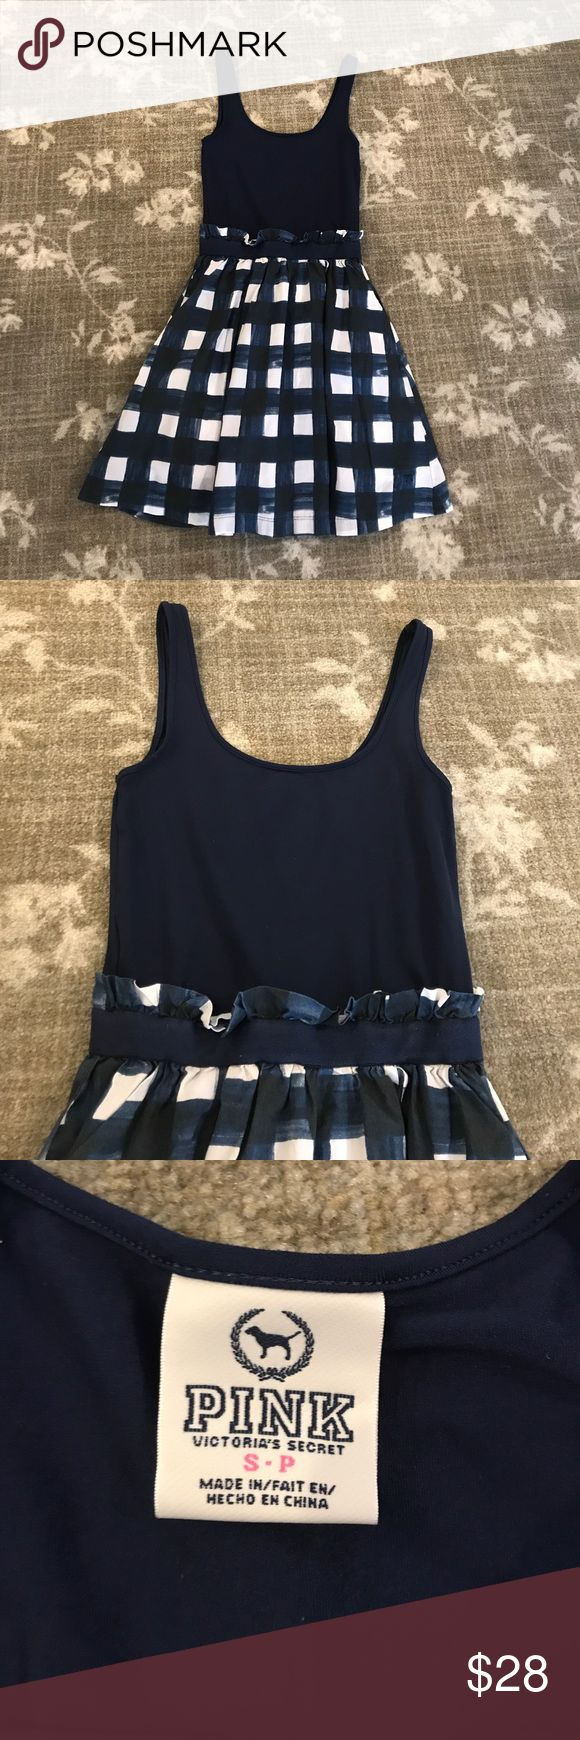 PINK Victoria's Secret Sun Dress🎉 Navy blue and white PINK Victoria's Secret sun dress. Top is stretchy. Bottom is cotton. Size Small. Worn before. I'm good condition! PINK Victoria's Secret Dresses Mini